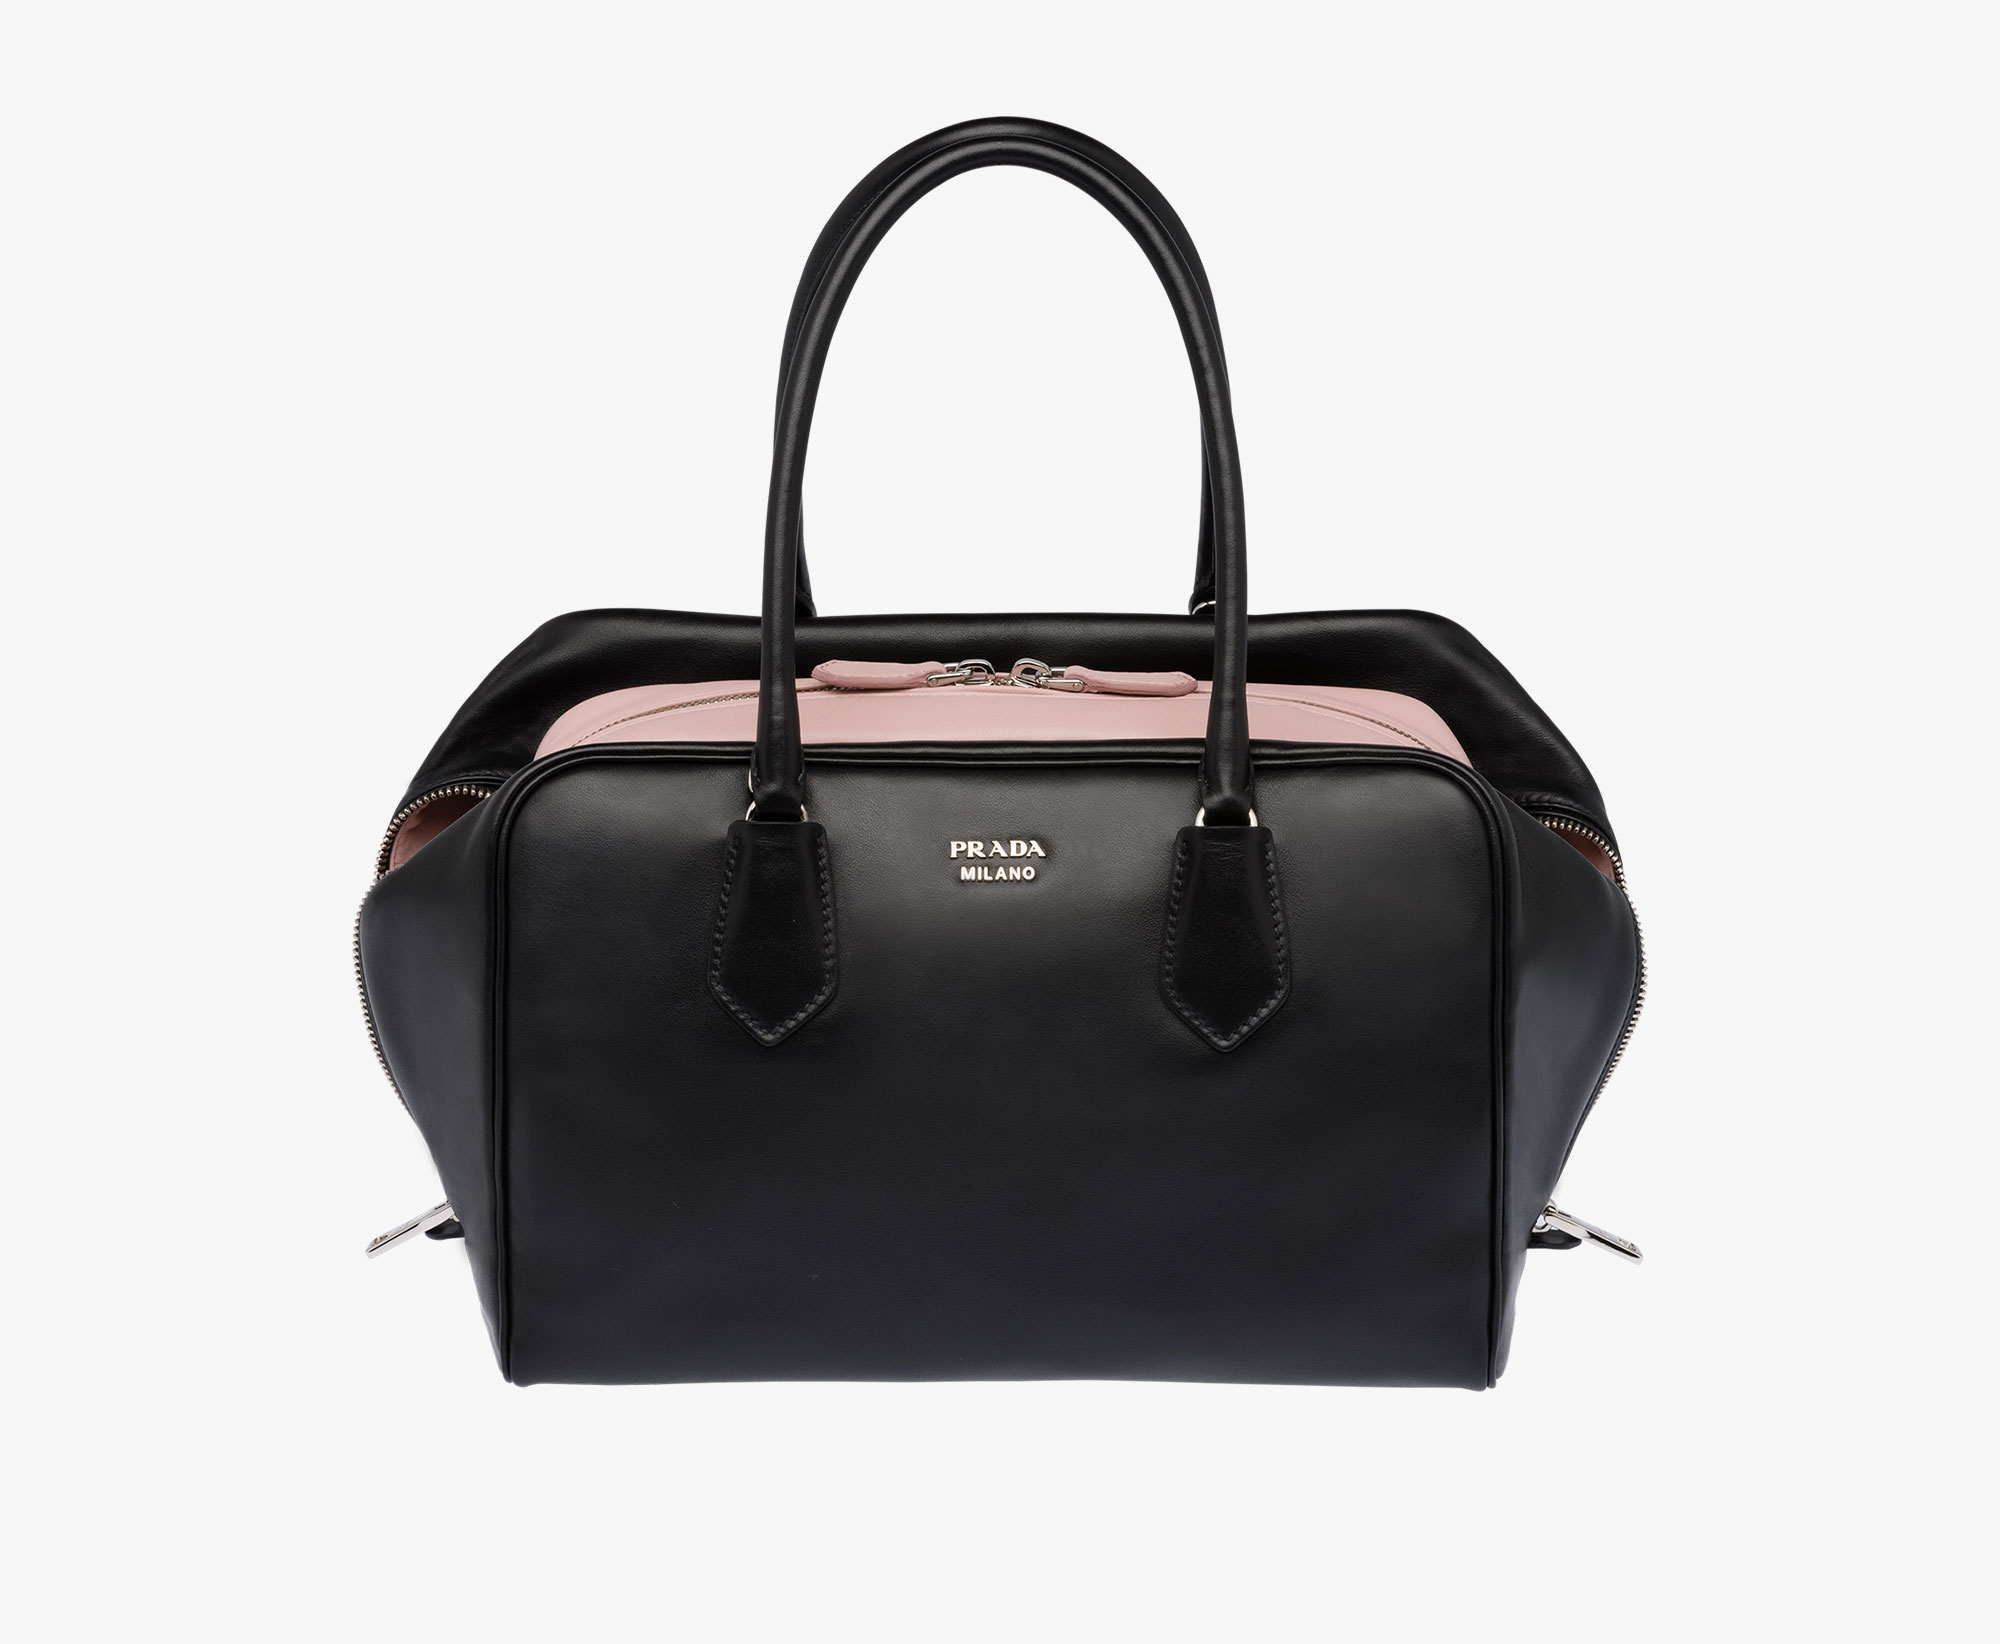 249be29bbcb381 Prada Inside Tote Bag Reference Guide | Spotted Fashion